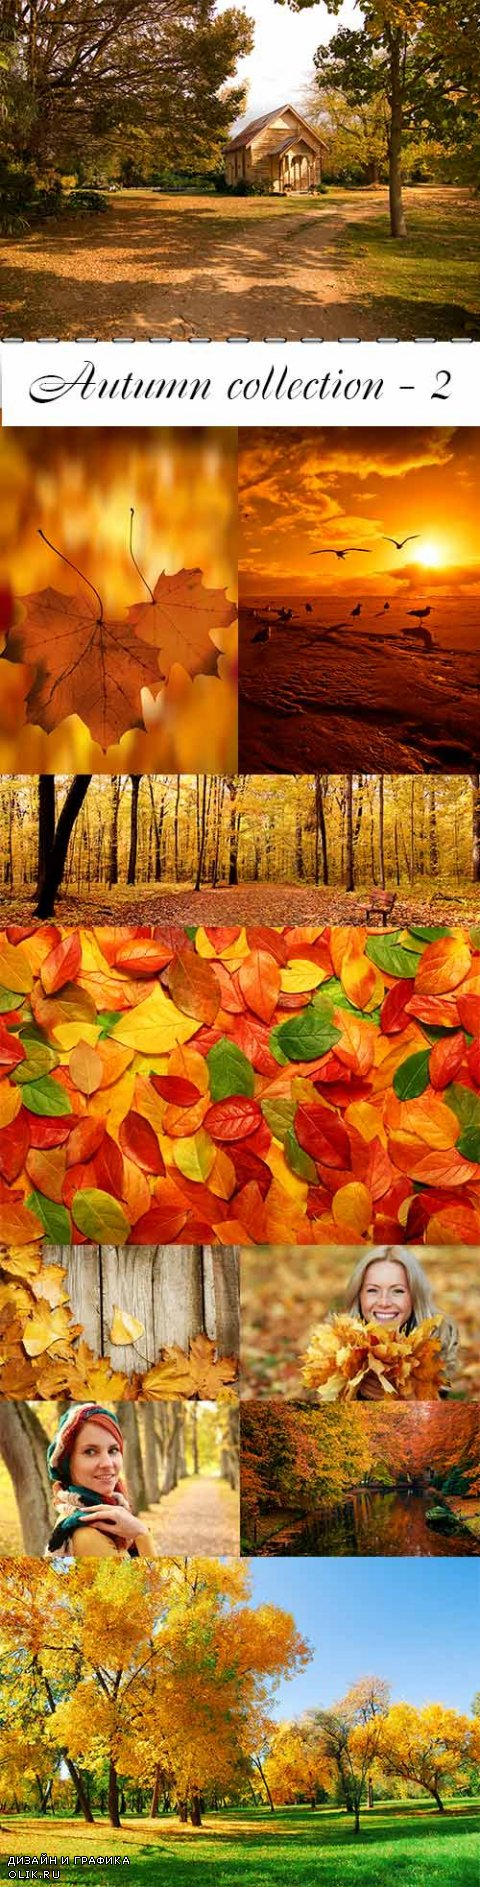 Autumn collection raster graphics - 2